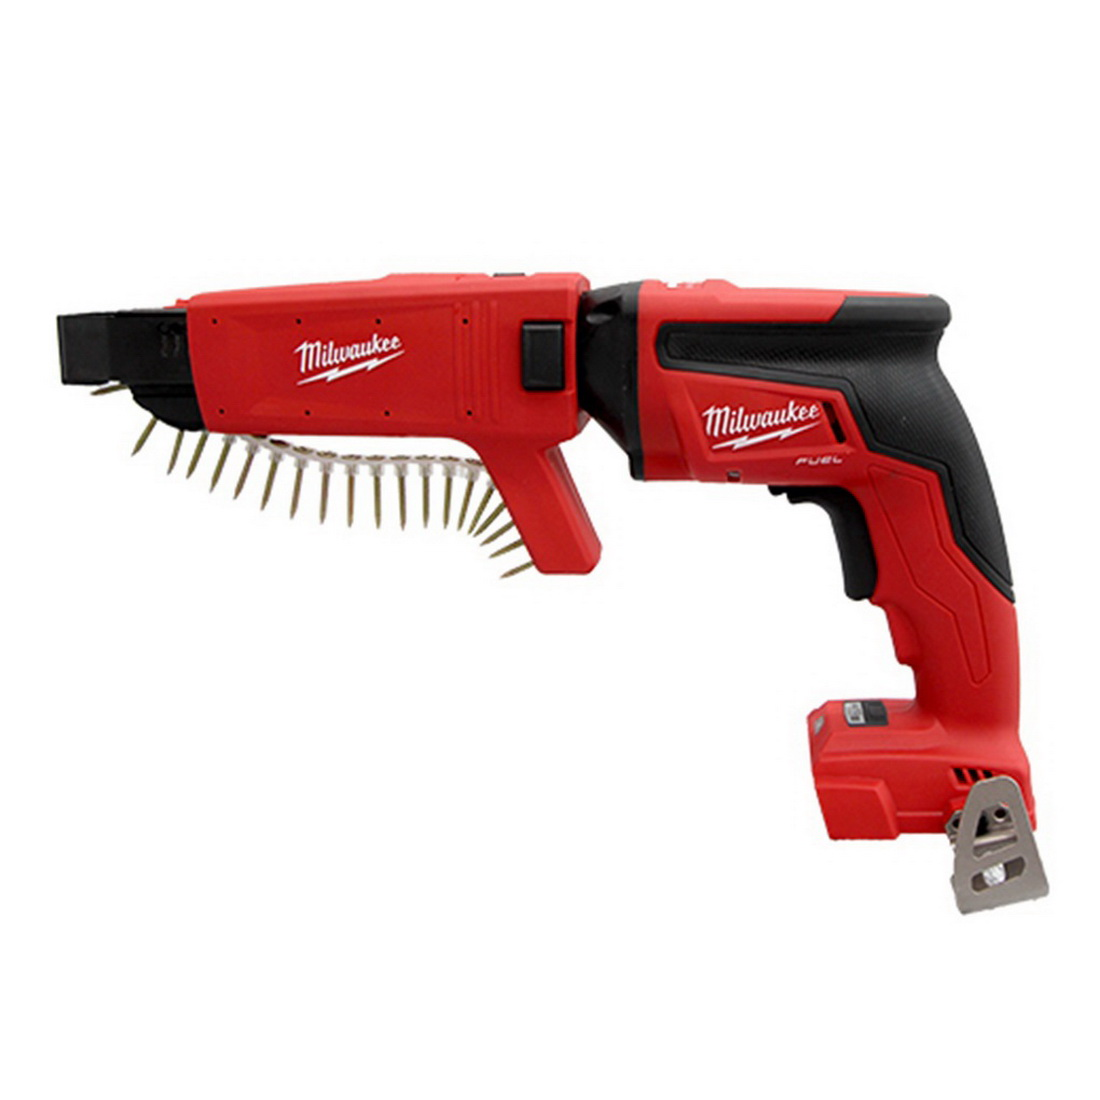 M18 FUEL Drywall Screw Gun with Collated Attachment (Tool Only) M18FSGC-0